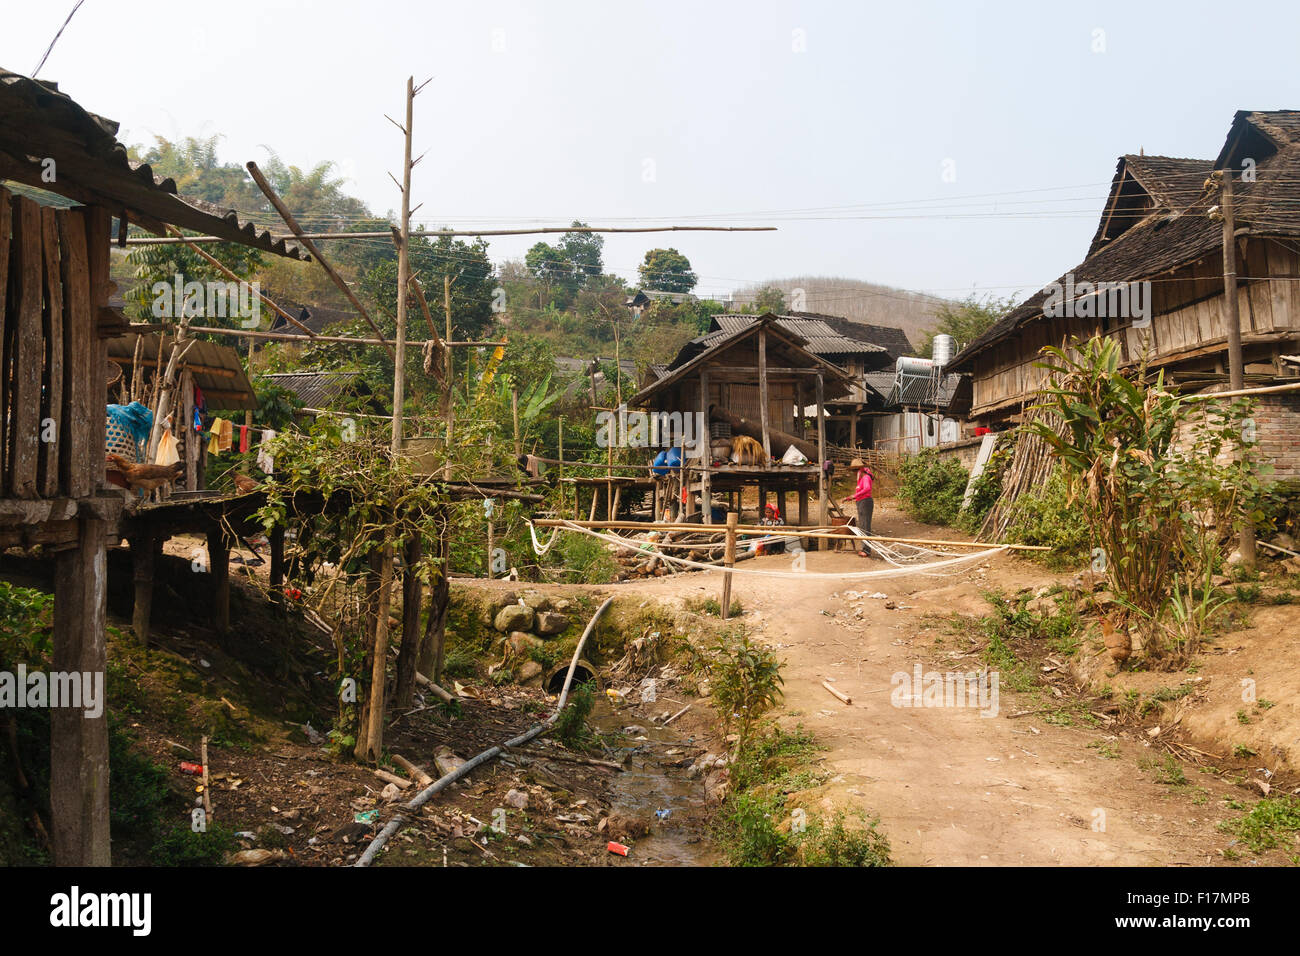 A rural village in Xishuangbanna, Yunnan, China where women are weaving and spinning in traditional fashion - Stock Image